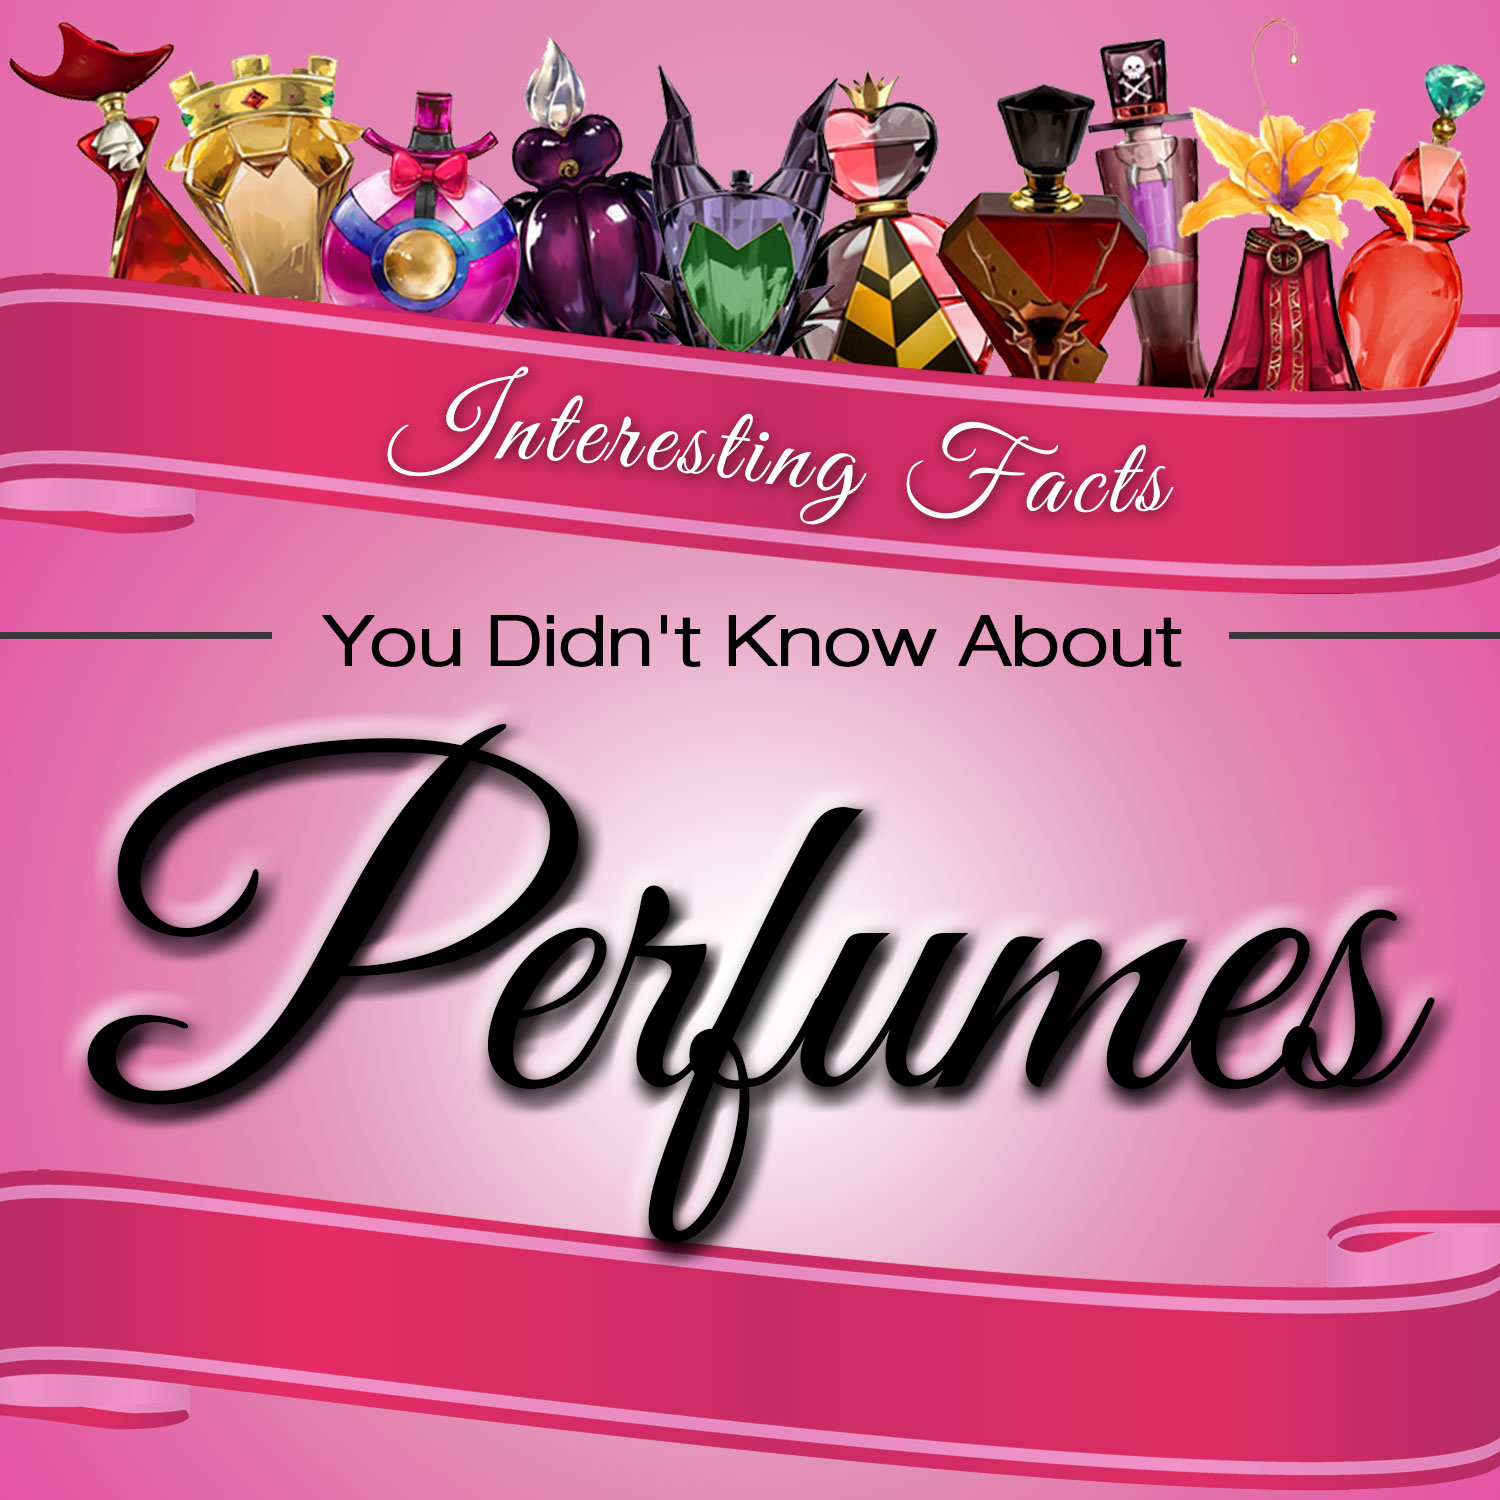 8 Interesting Facts You Didn't Know About Perfumes